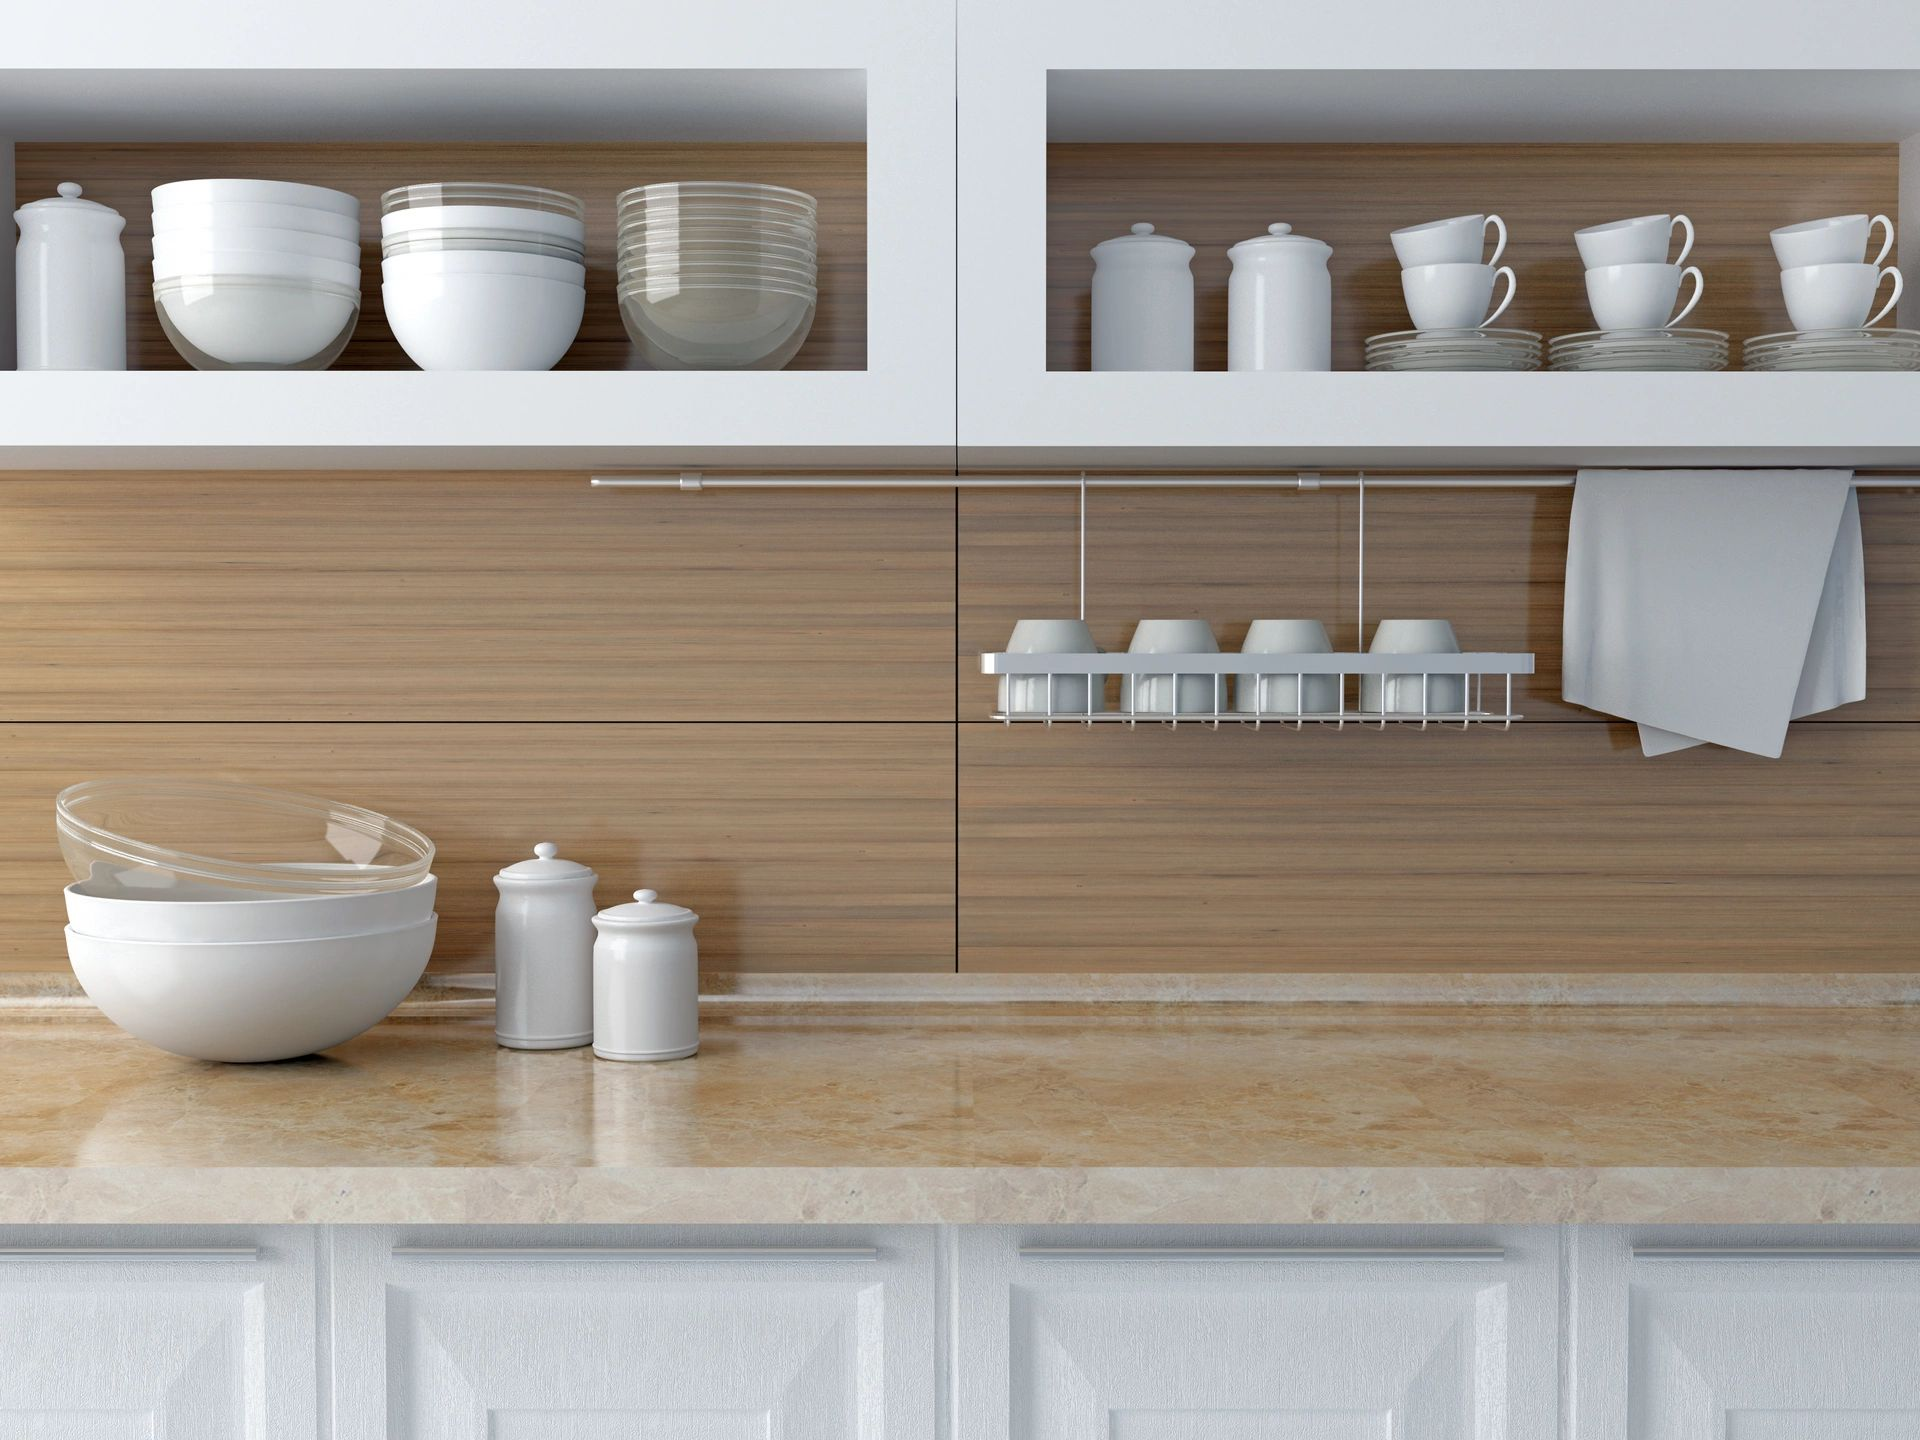 HOW TO KEEP YOUR KITCHEN TIDY